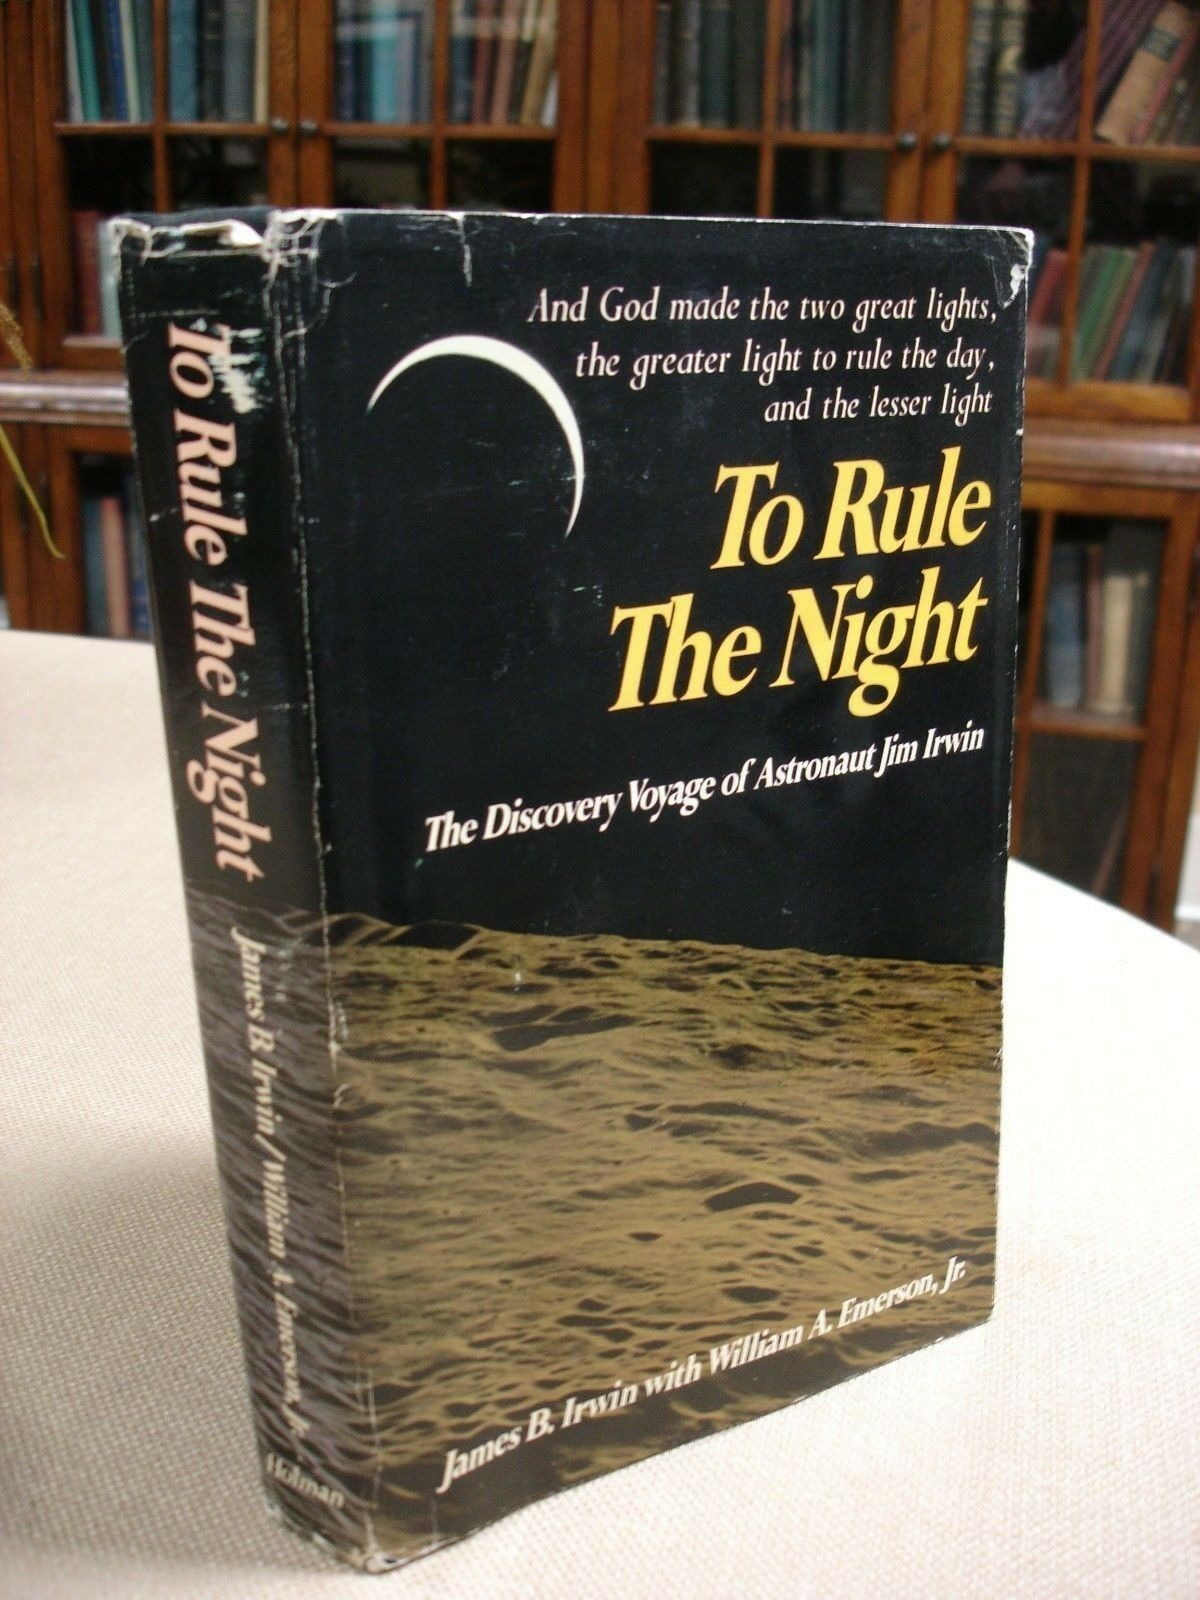 To Rule the Night signed by Author and Jim Irwin - 1973